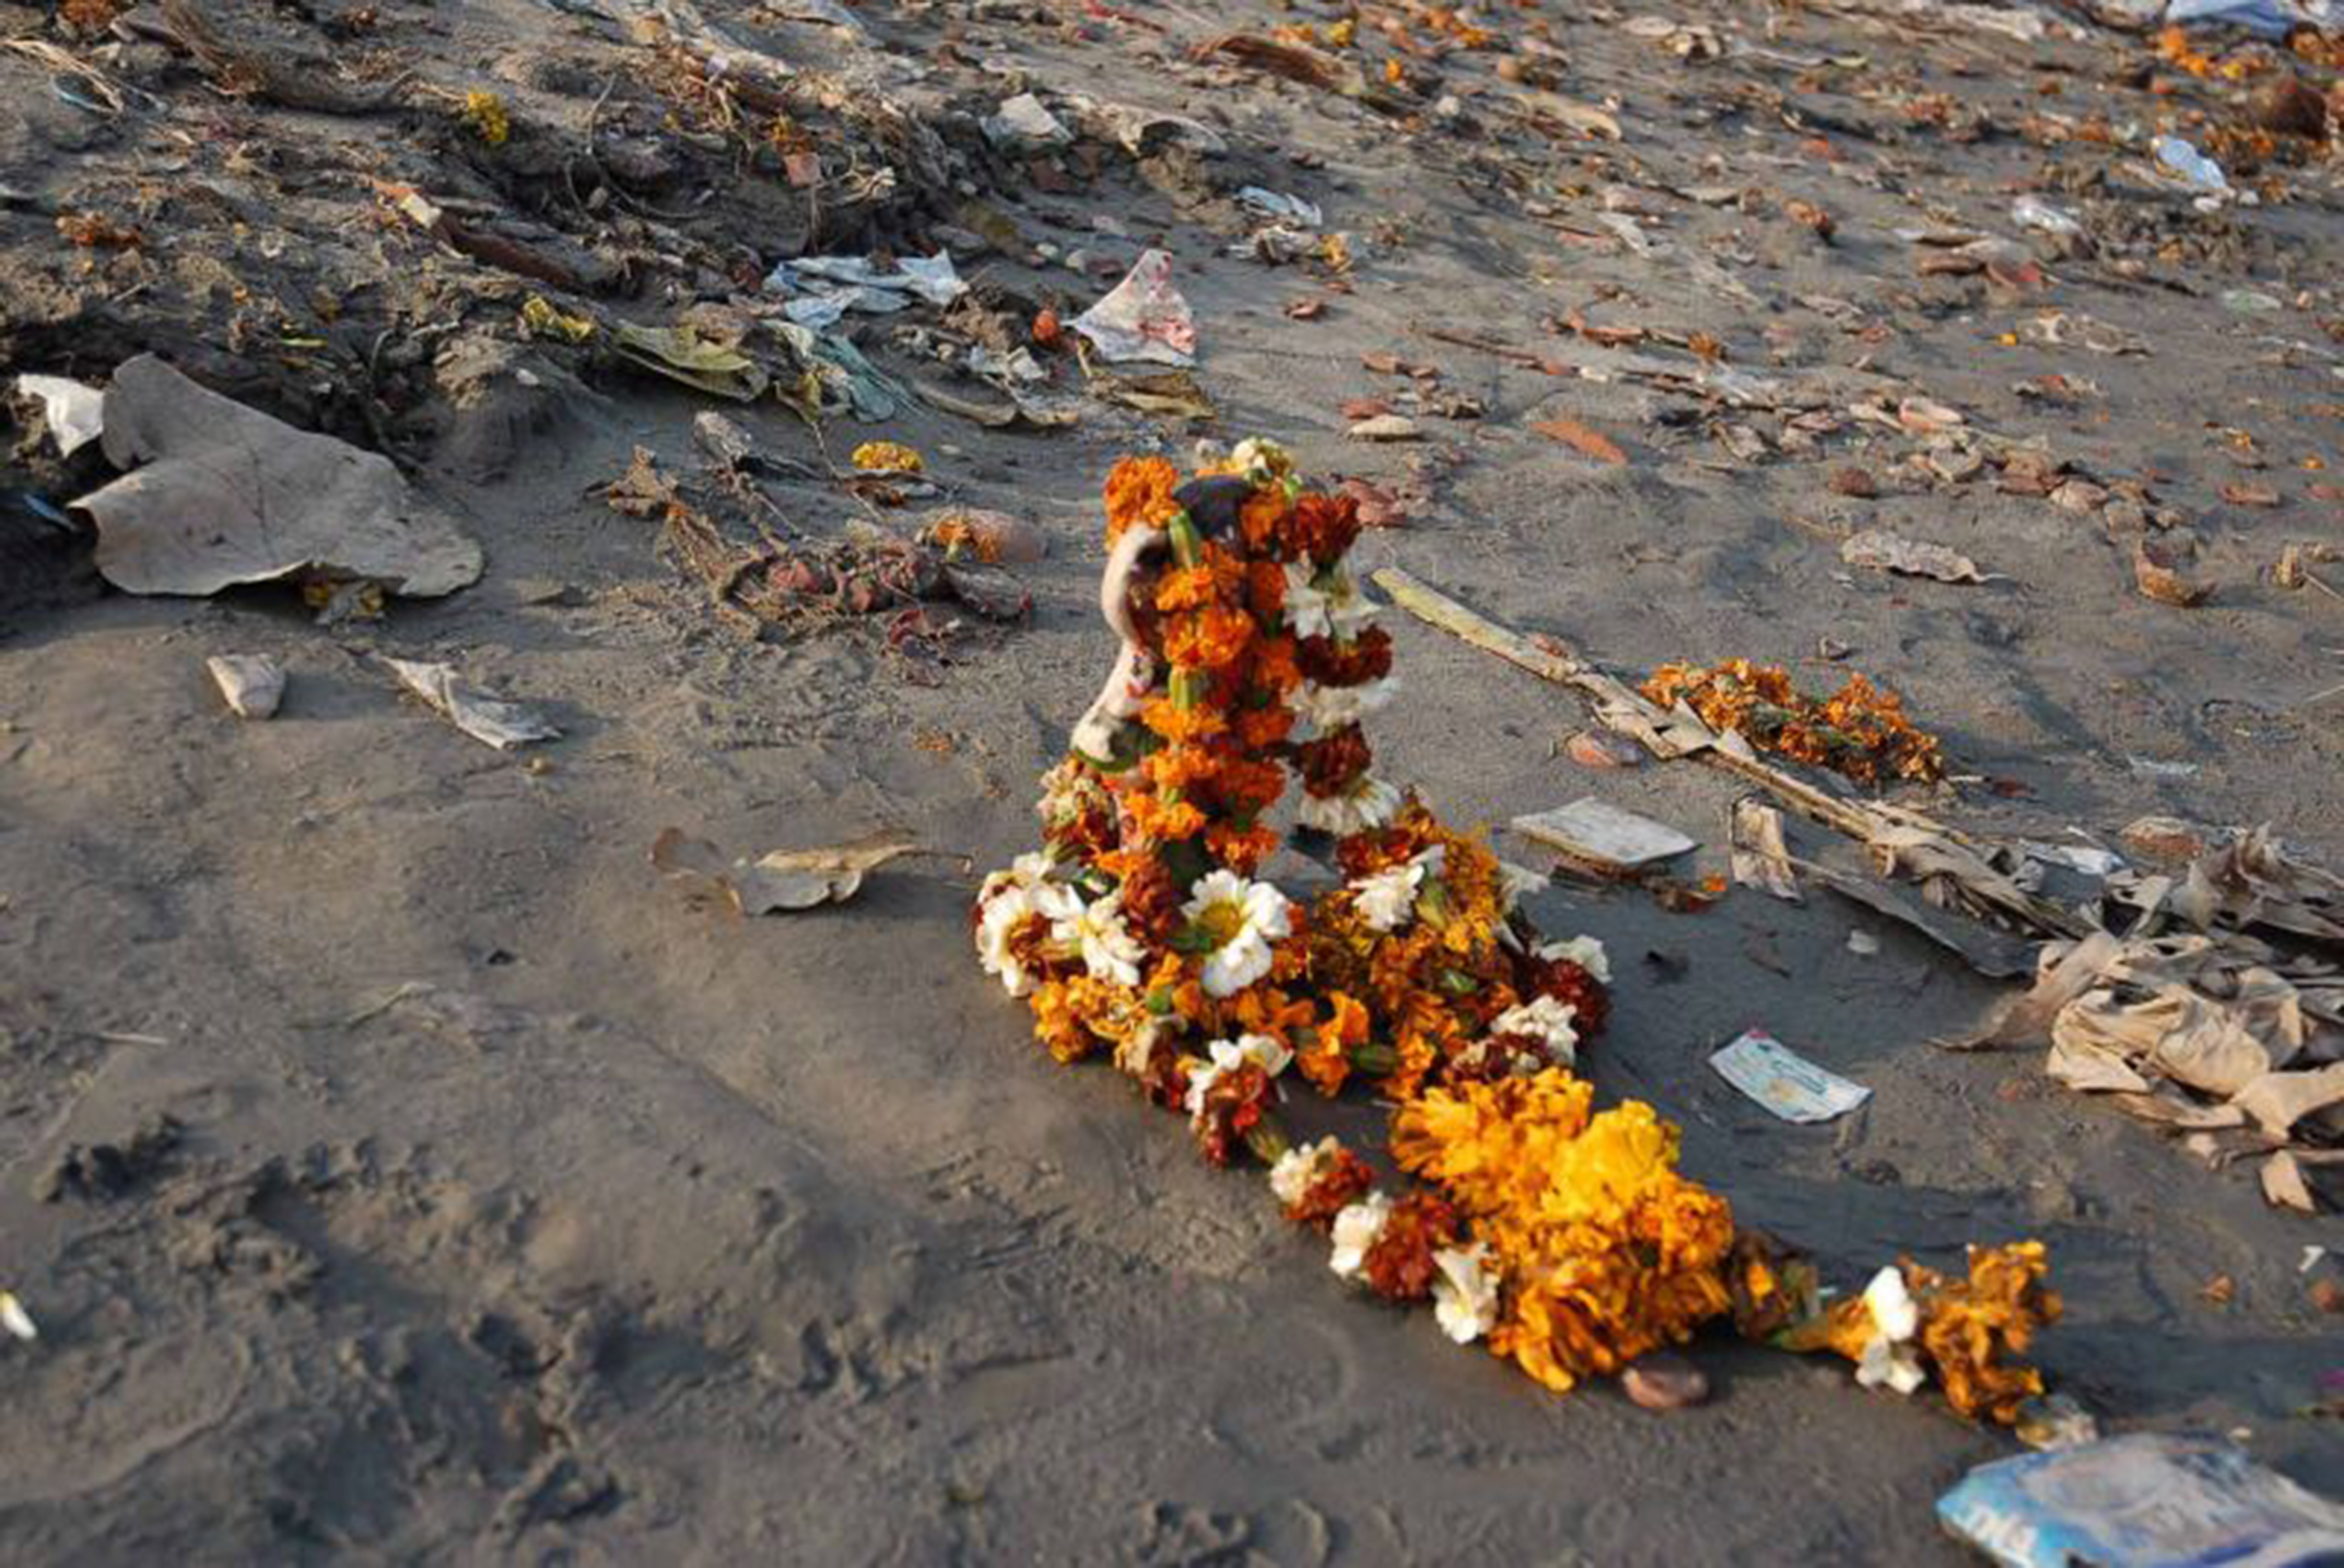 Ravi Agarwal,  Have you seen the flowers on the river?,  2007, stampa fotografica, 24 x 36 cm, courtesy: courtesy Ravi Agarwal